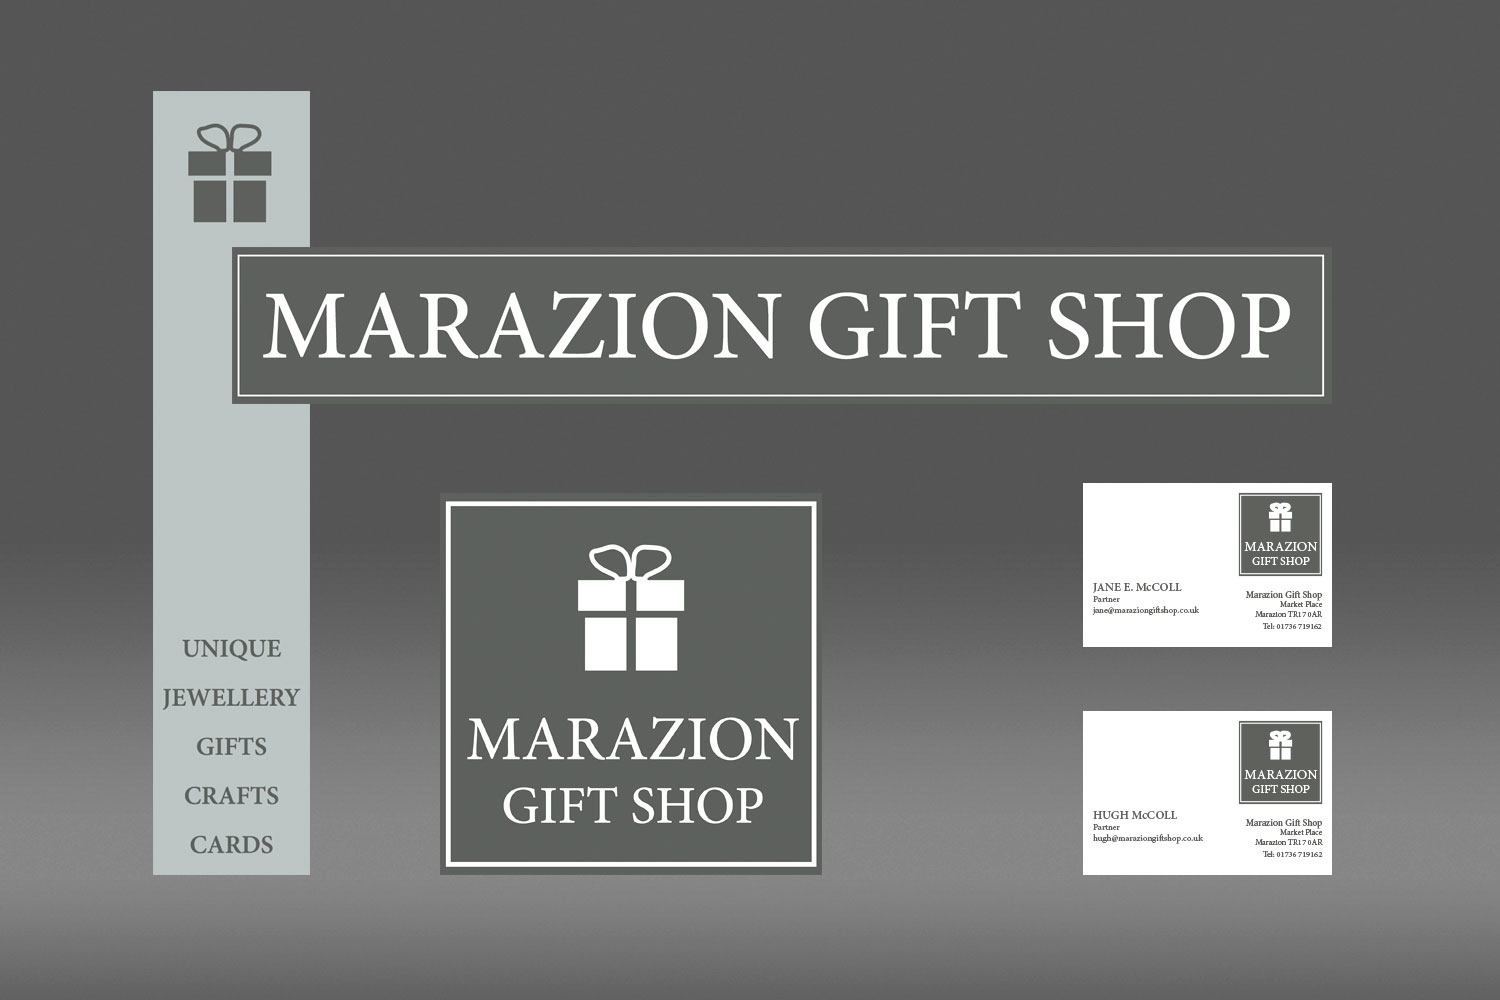 Marazion Gift Shop signage design and branding from cornishrock in Cornwall